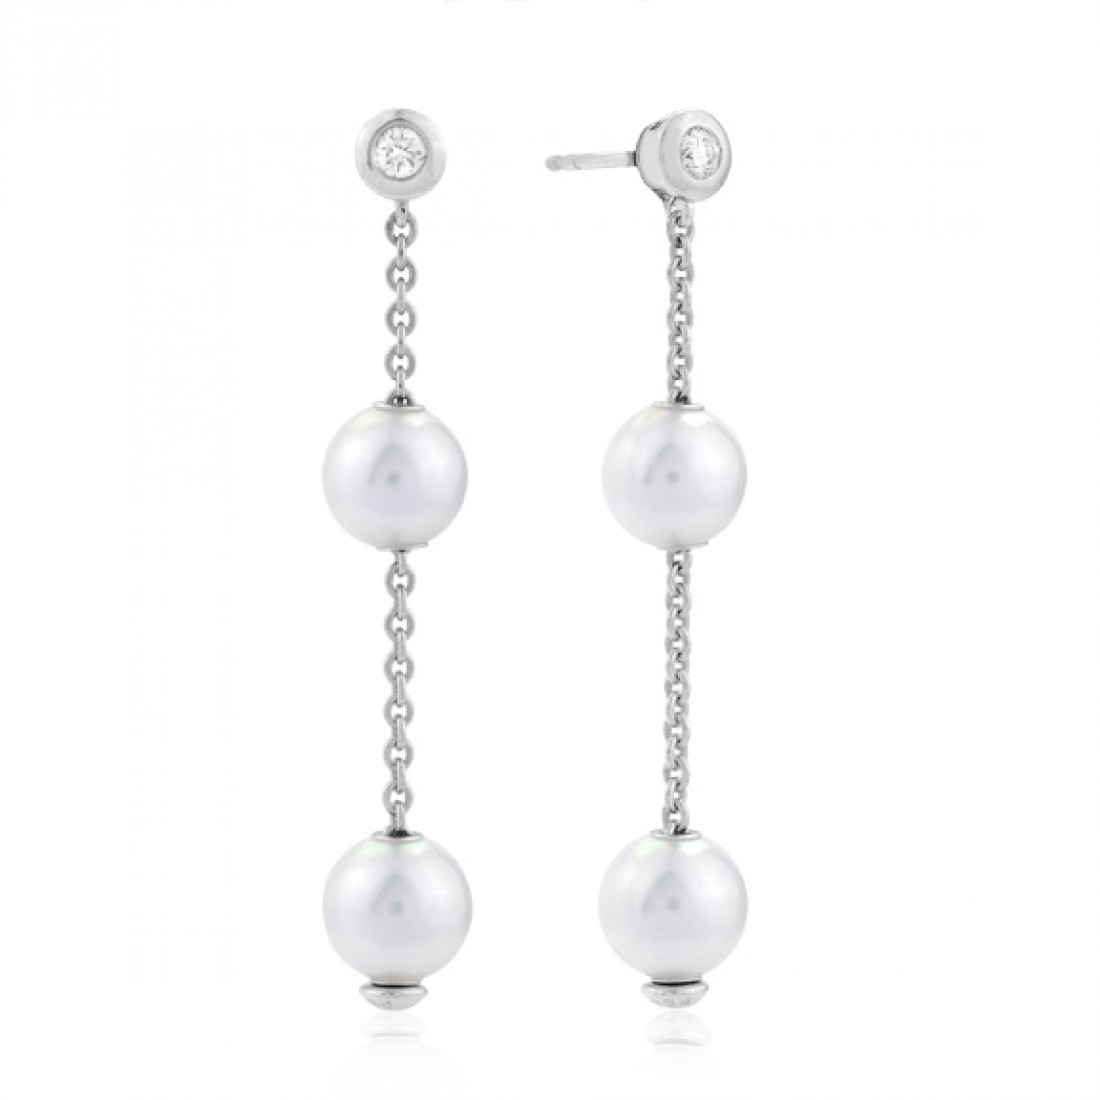 Mikimoto 18K White Gold .14cts  Diamonds Pearl Earrings PEL 644D W